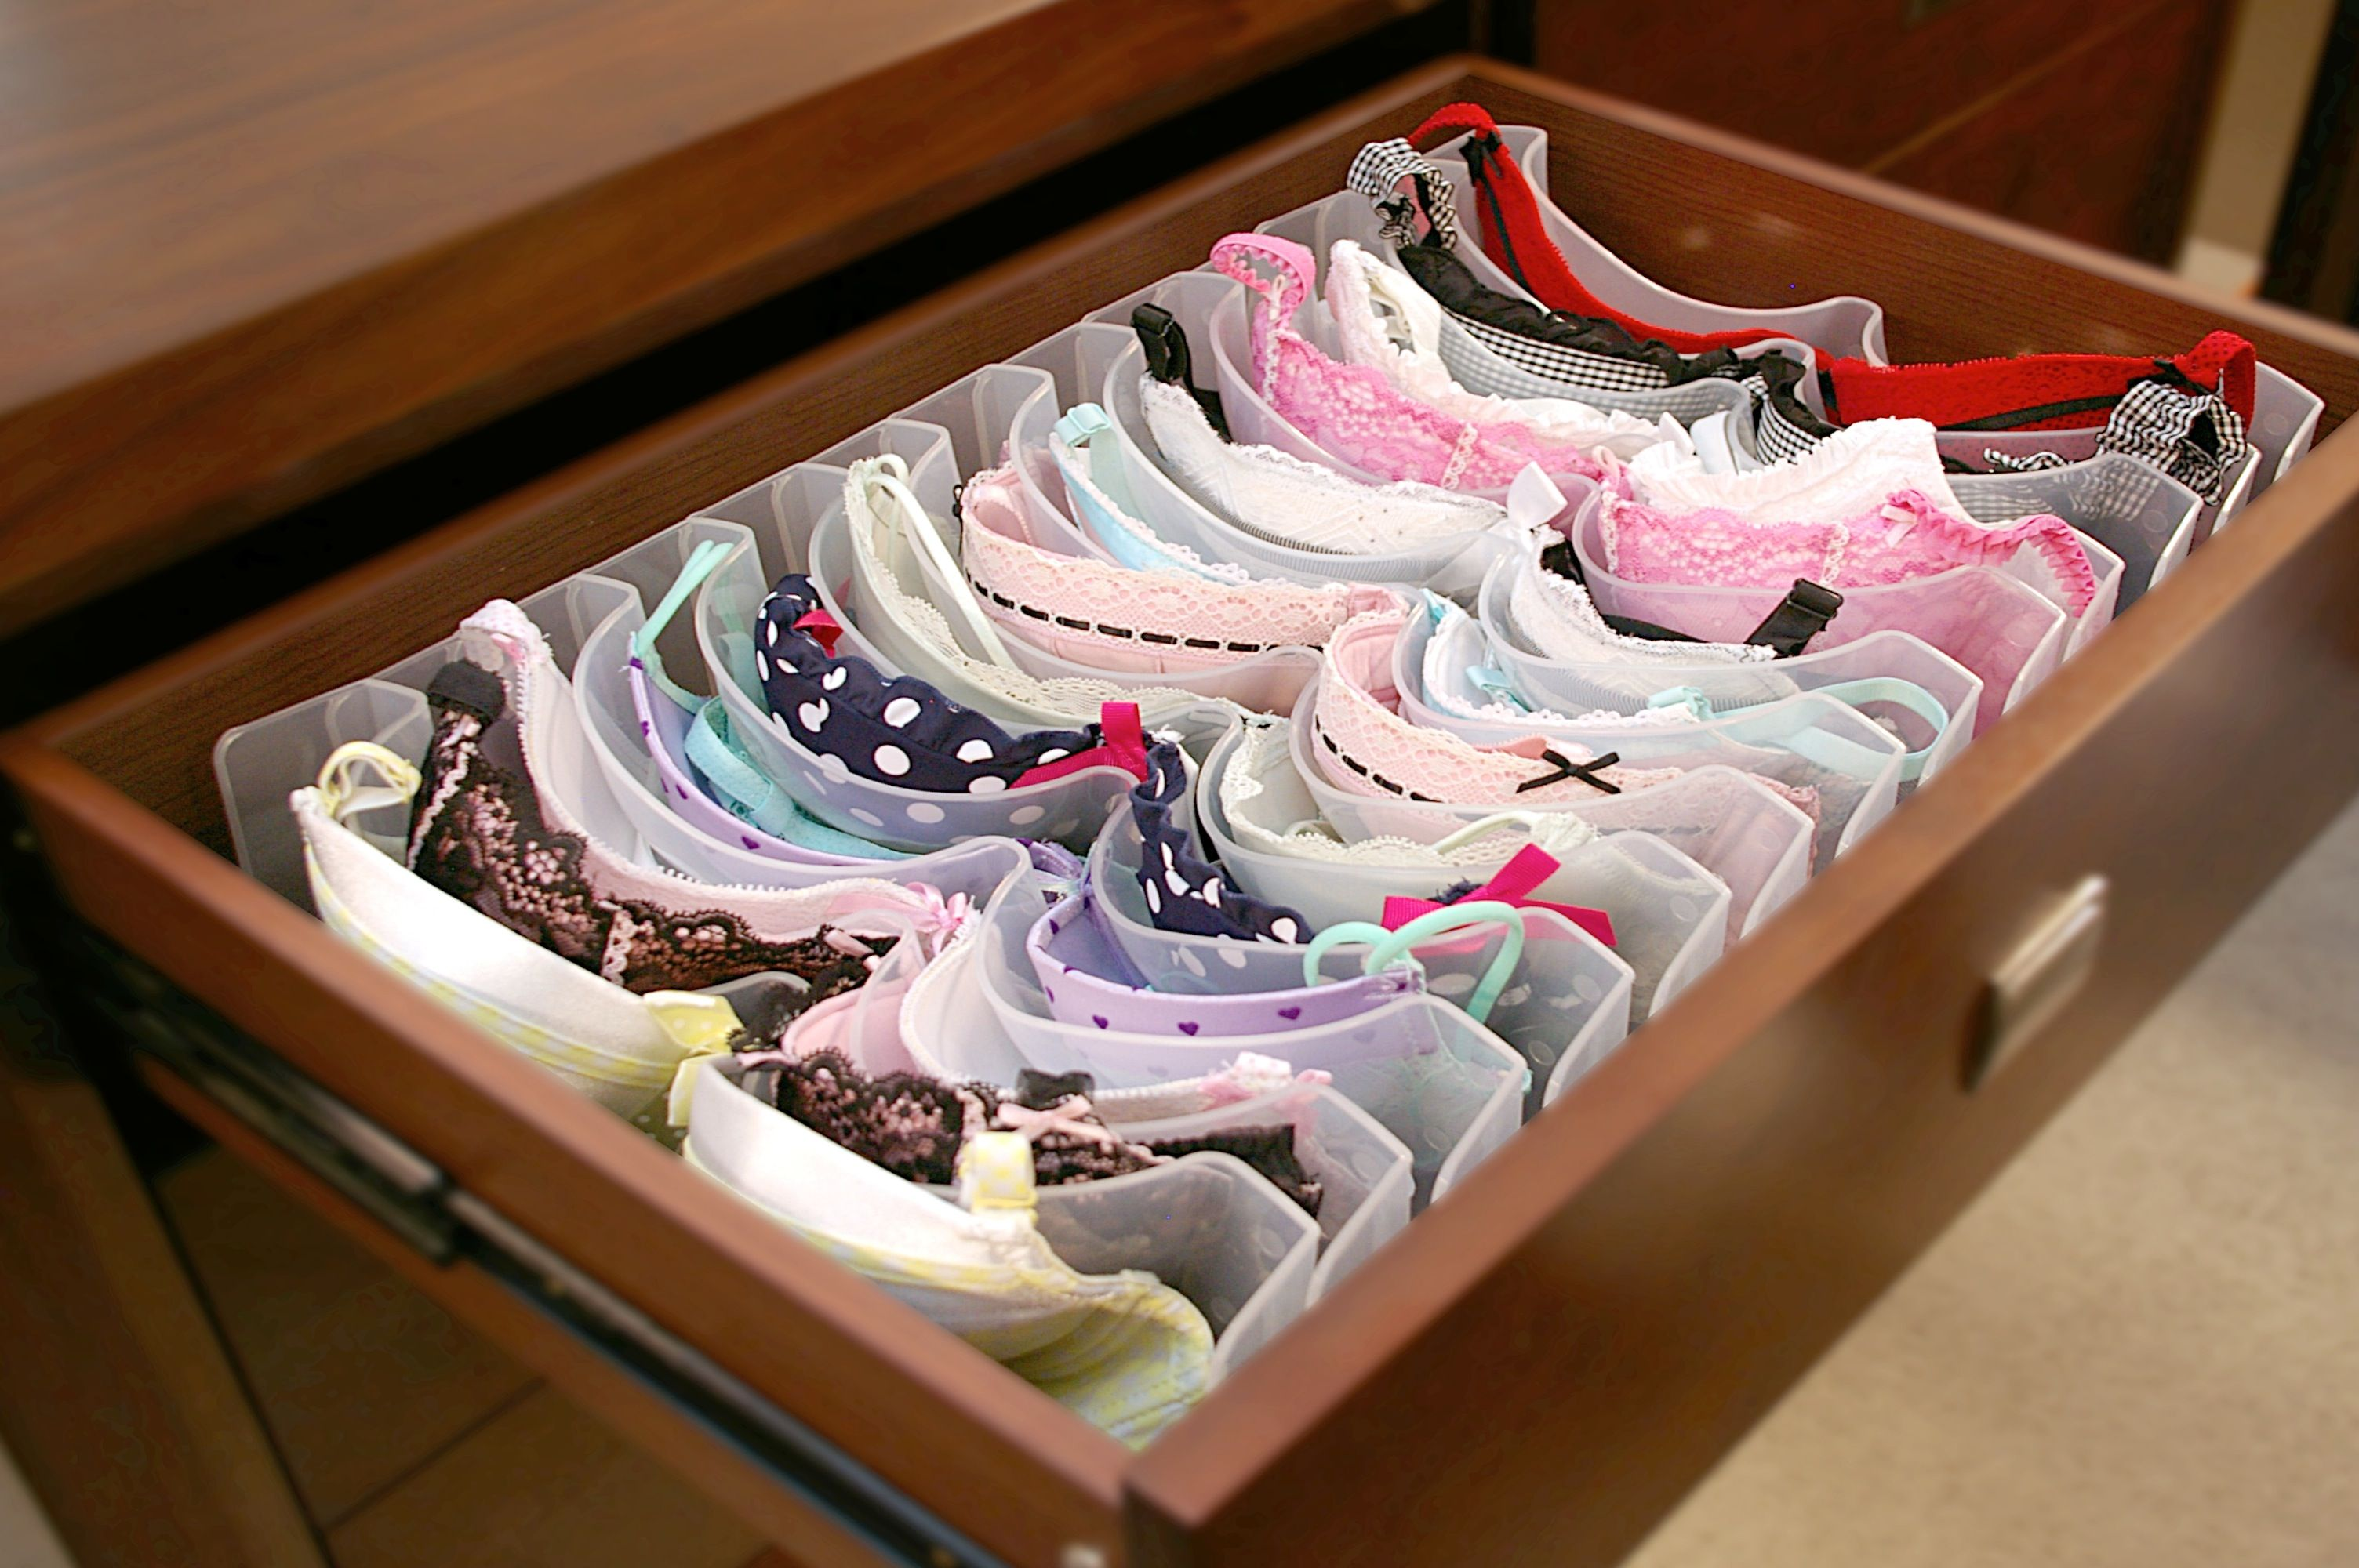 Superieur With Boobie Trap Bra Storage System (how Our Drawer Should Look) The Best  Way To Look After Your Bras And Tidy Your Drawer!